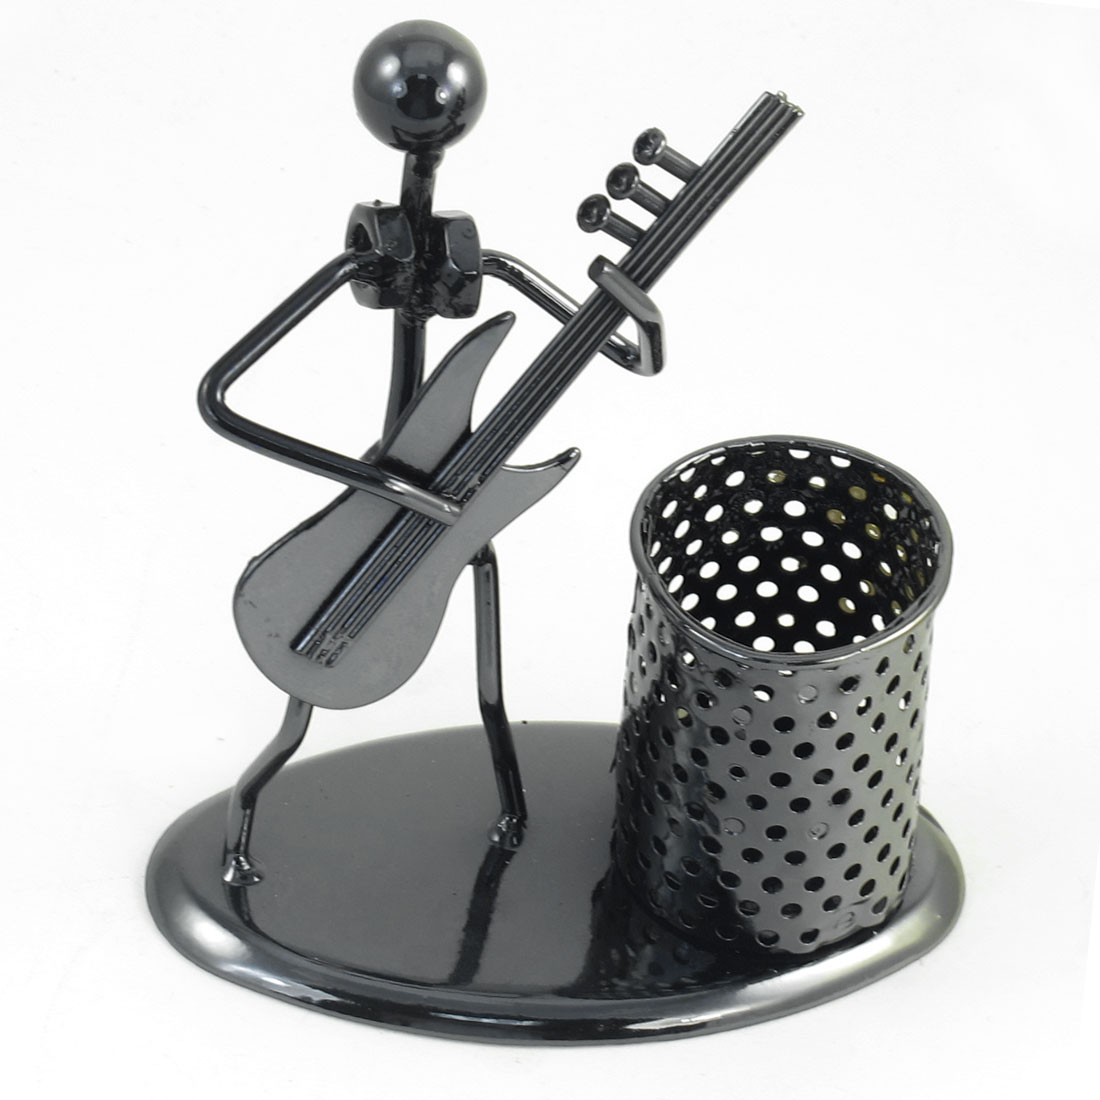 Guitar Man Decor Cylinder Dark Gray Metallic Desktop Pen Holder